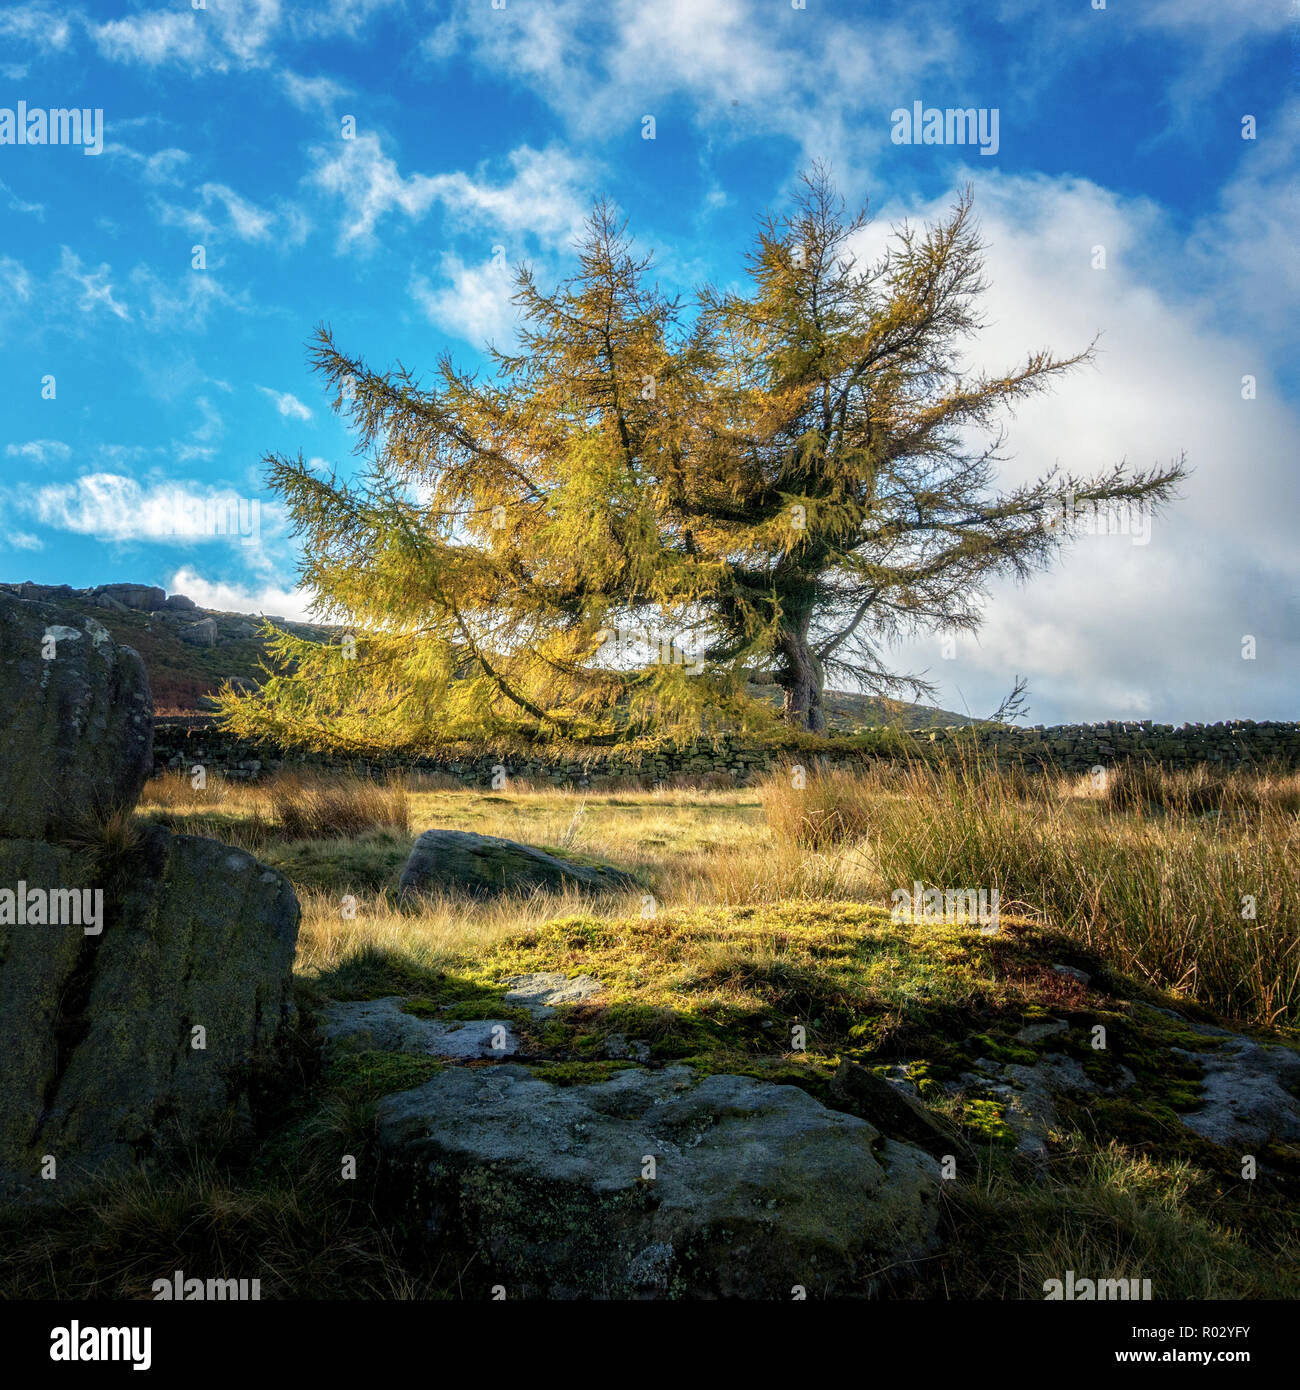 Single larch tree in autumn colours, Ilkley moor, West Yorkshire, UK - Stock Image